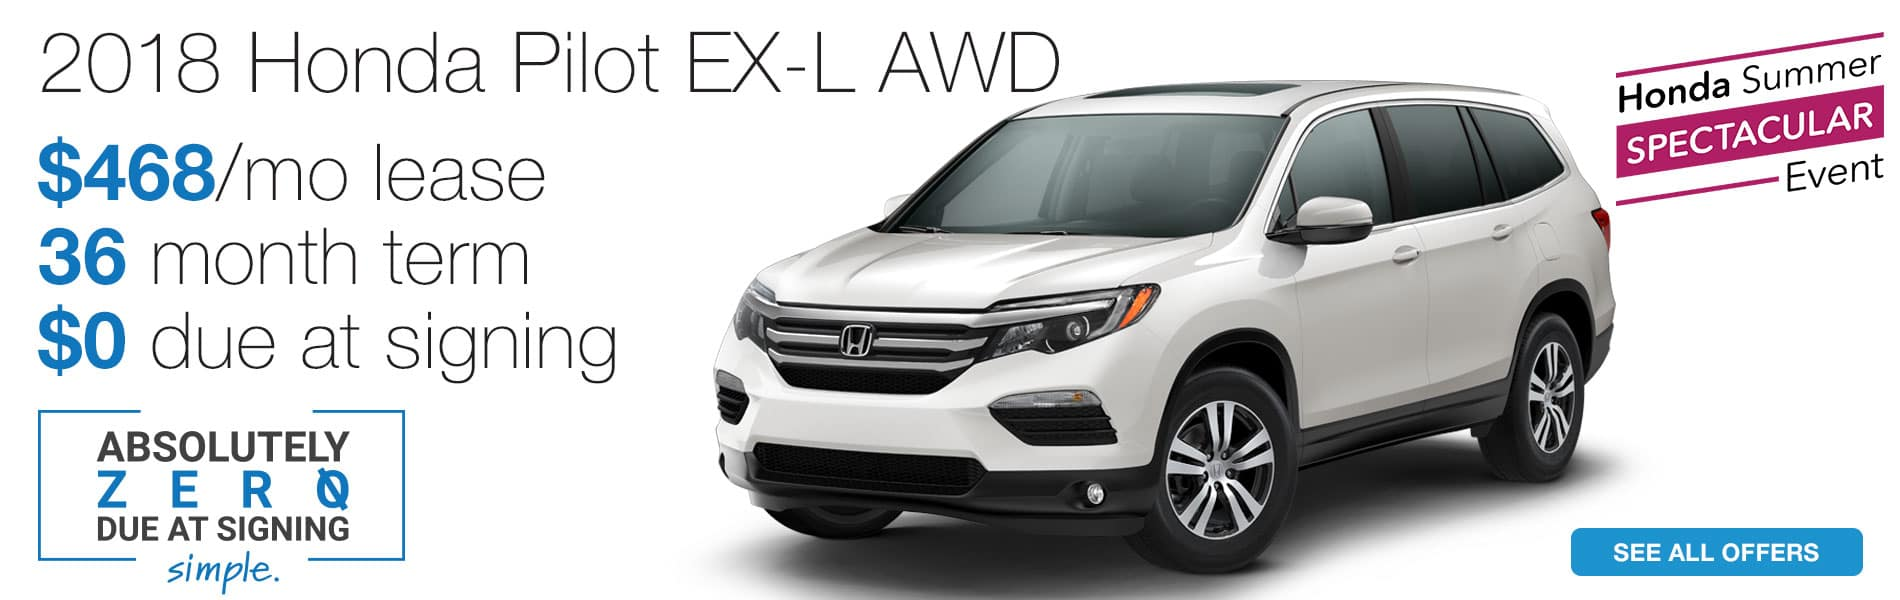 Lease a 2018 Honda Pilot EX-L AWD for $468 per month with absolutely $0 due at signing